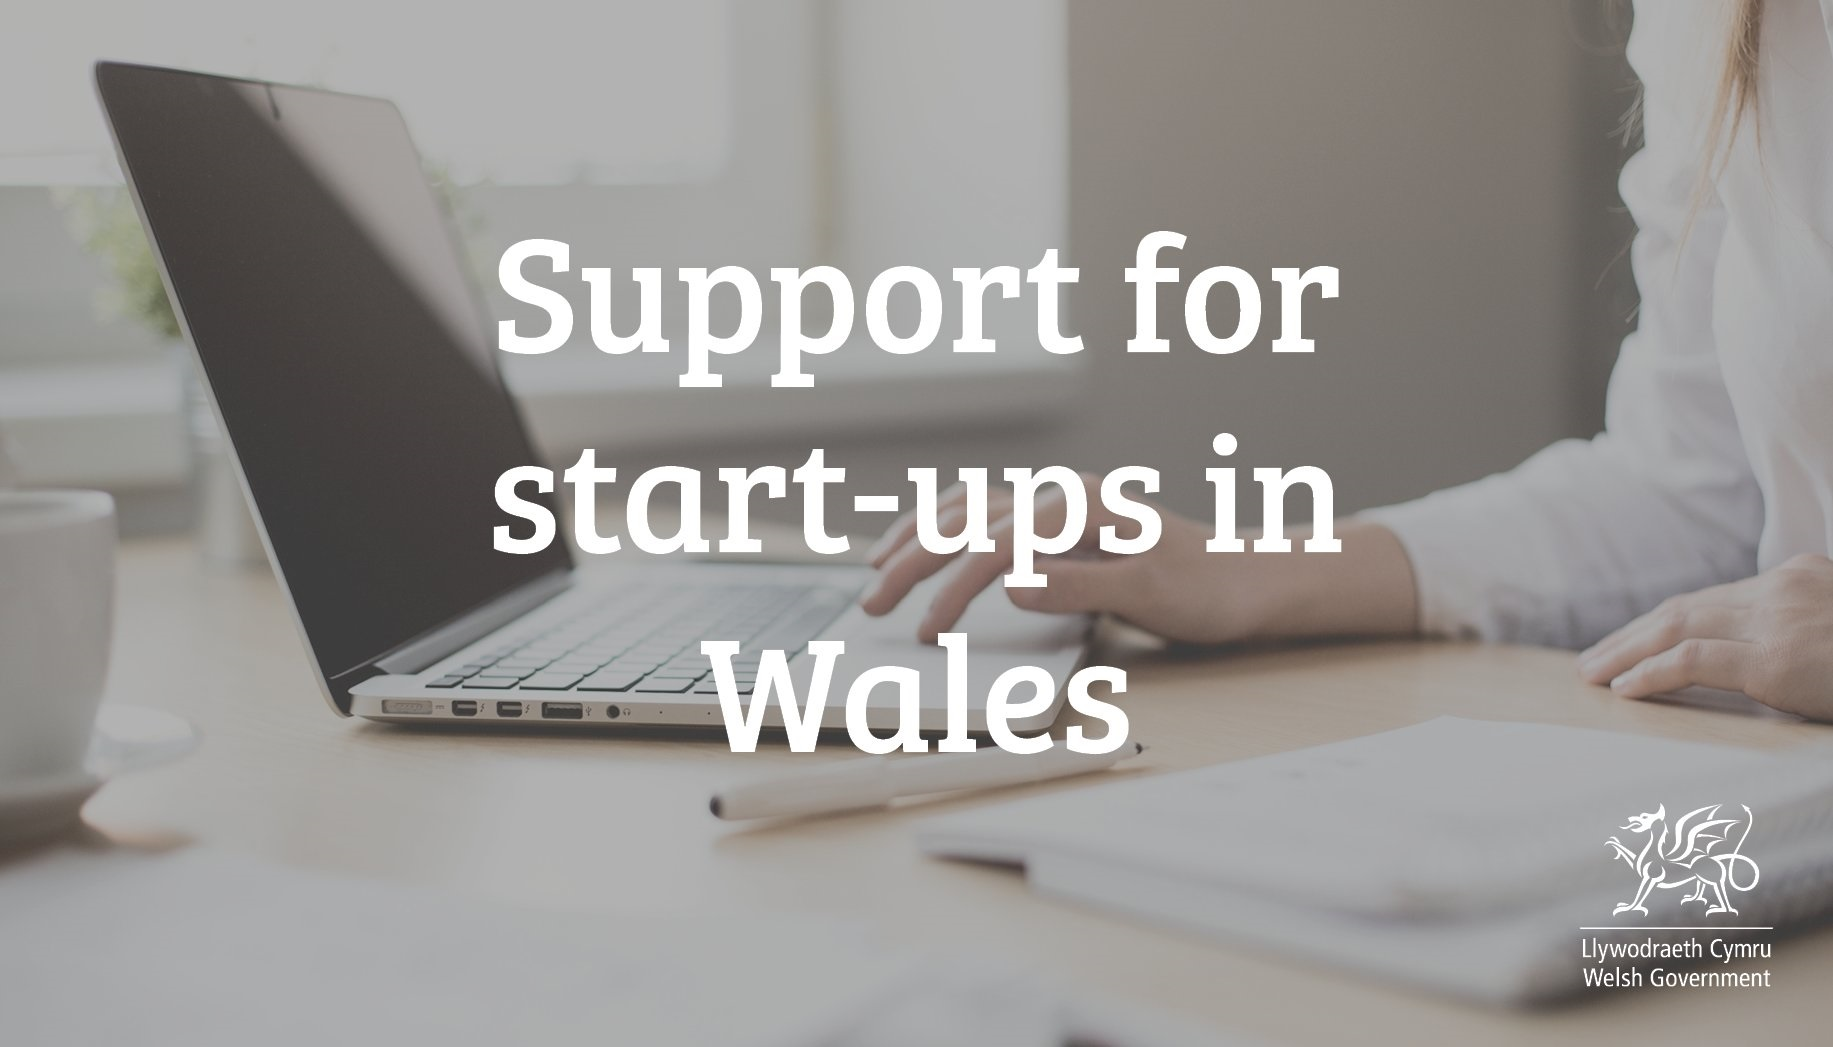 Support for start-ups in Wales